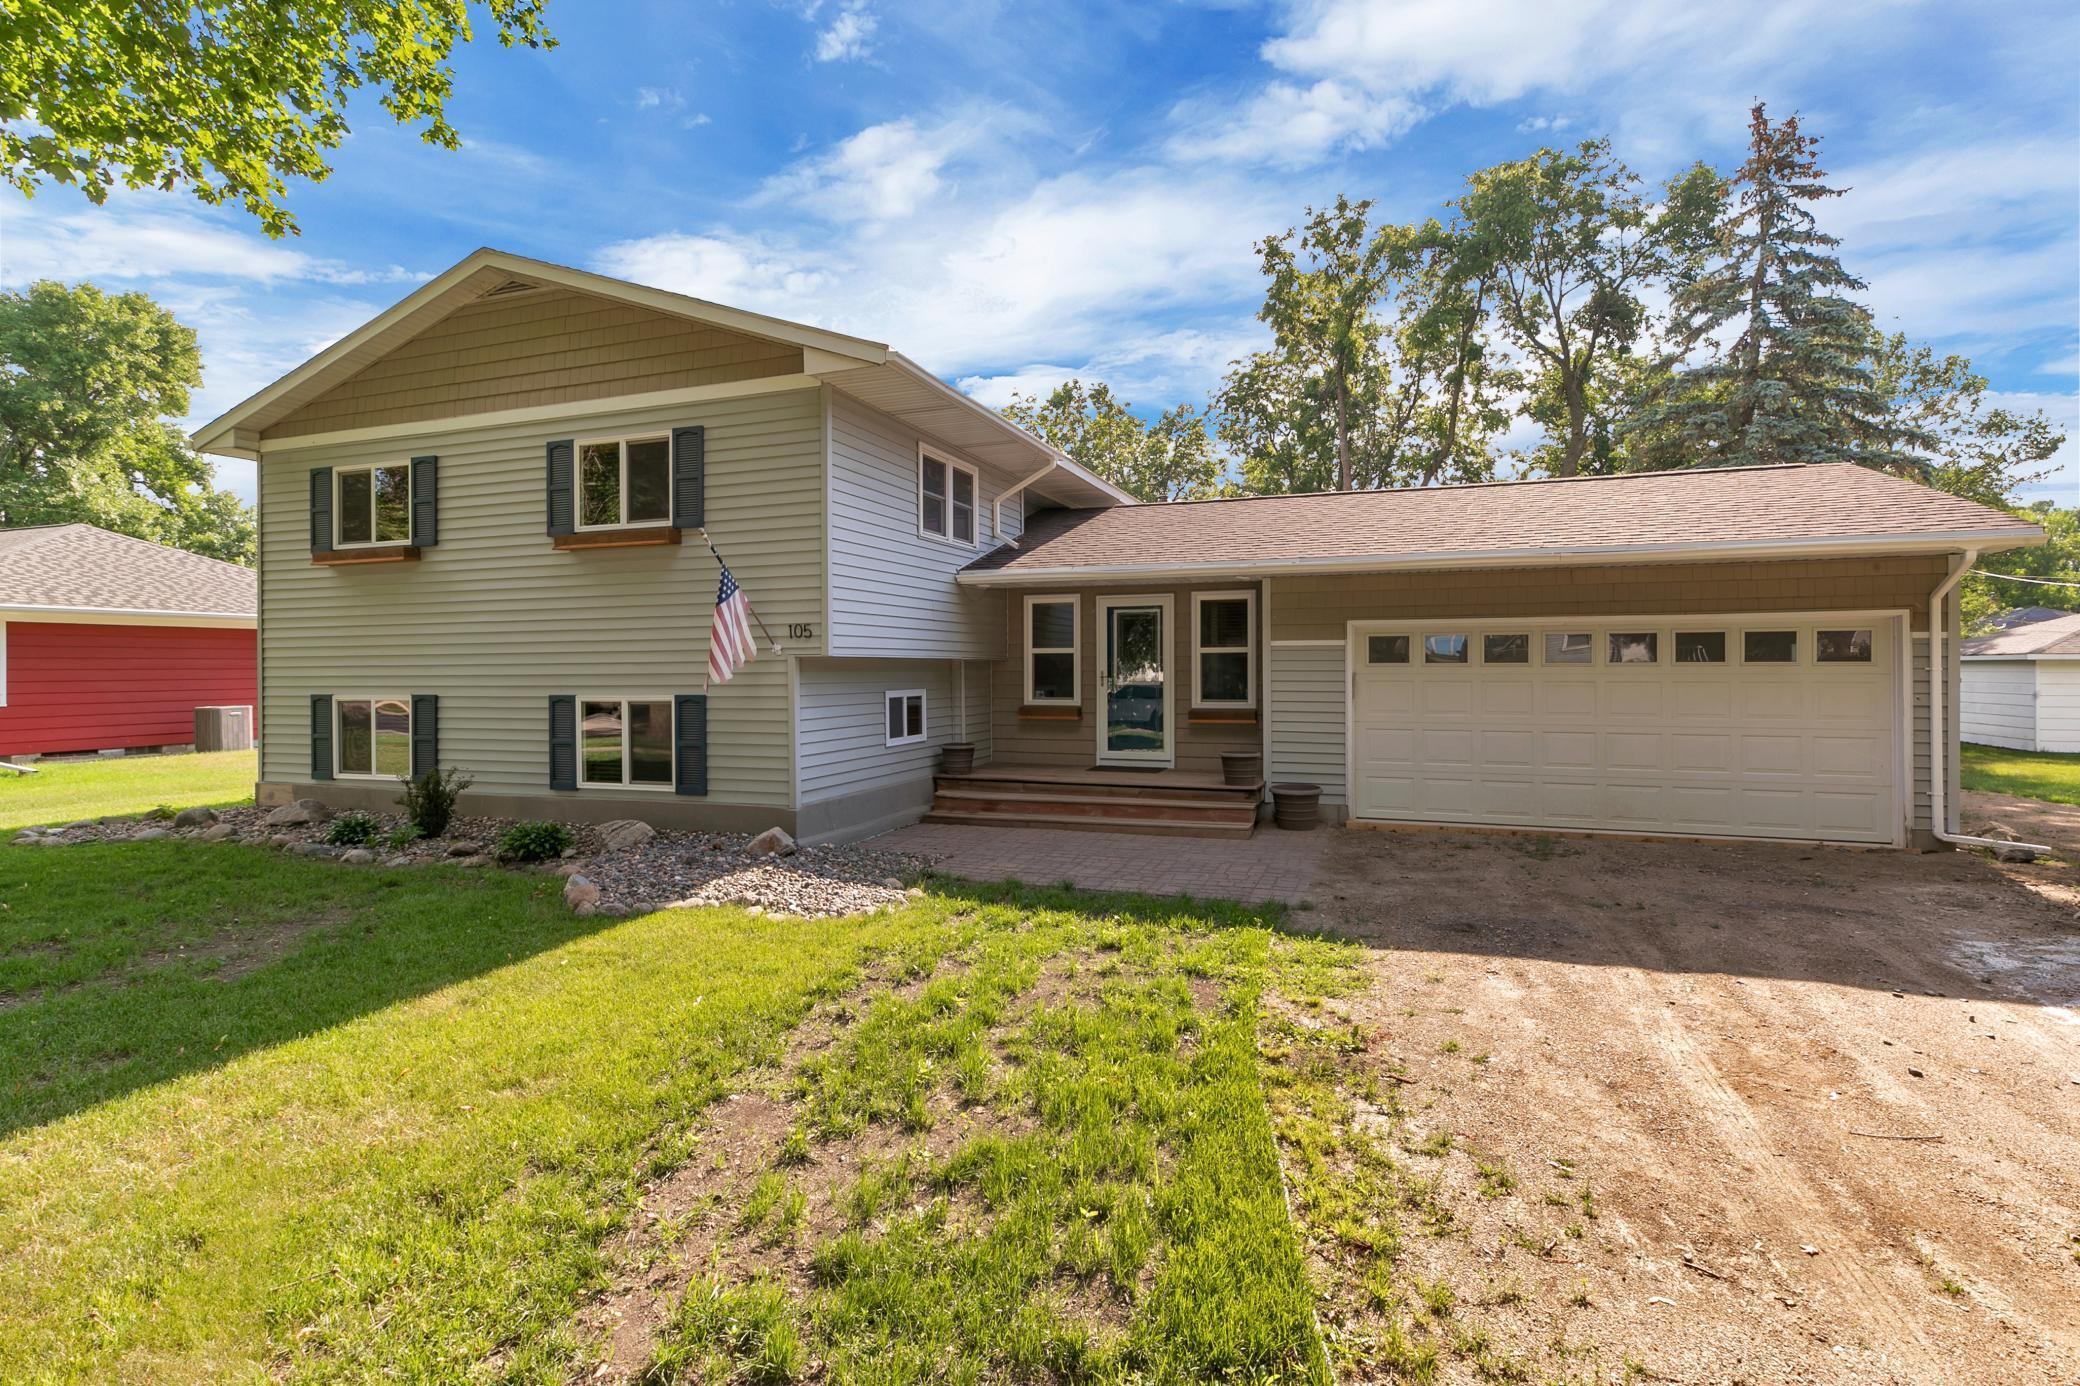 105 2nd Street S Property Photo - Atwater, MN real estate listing